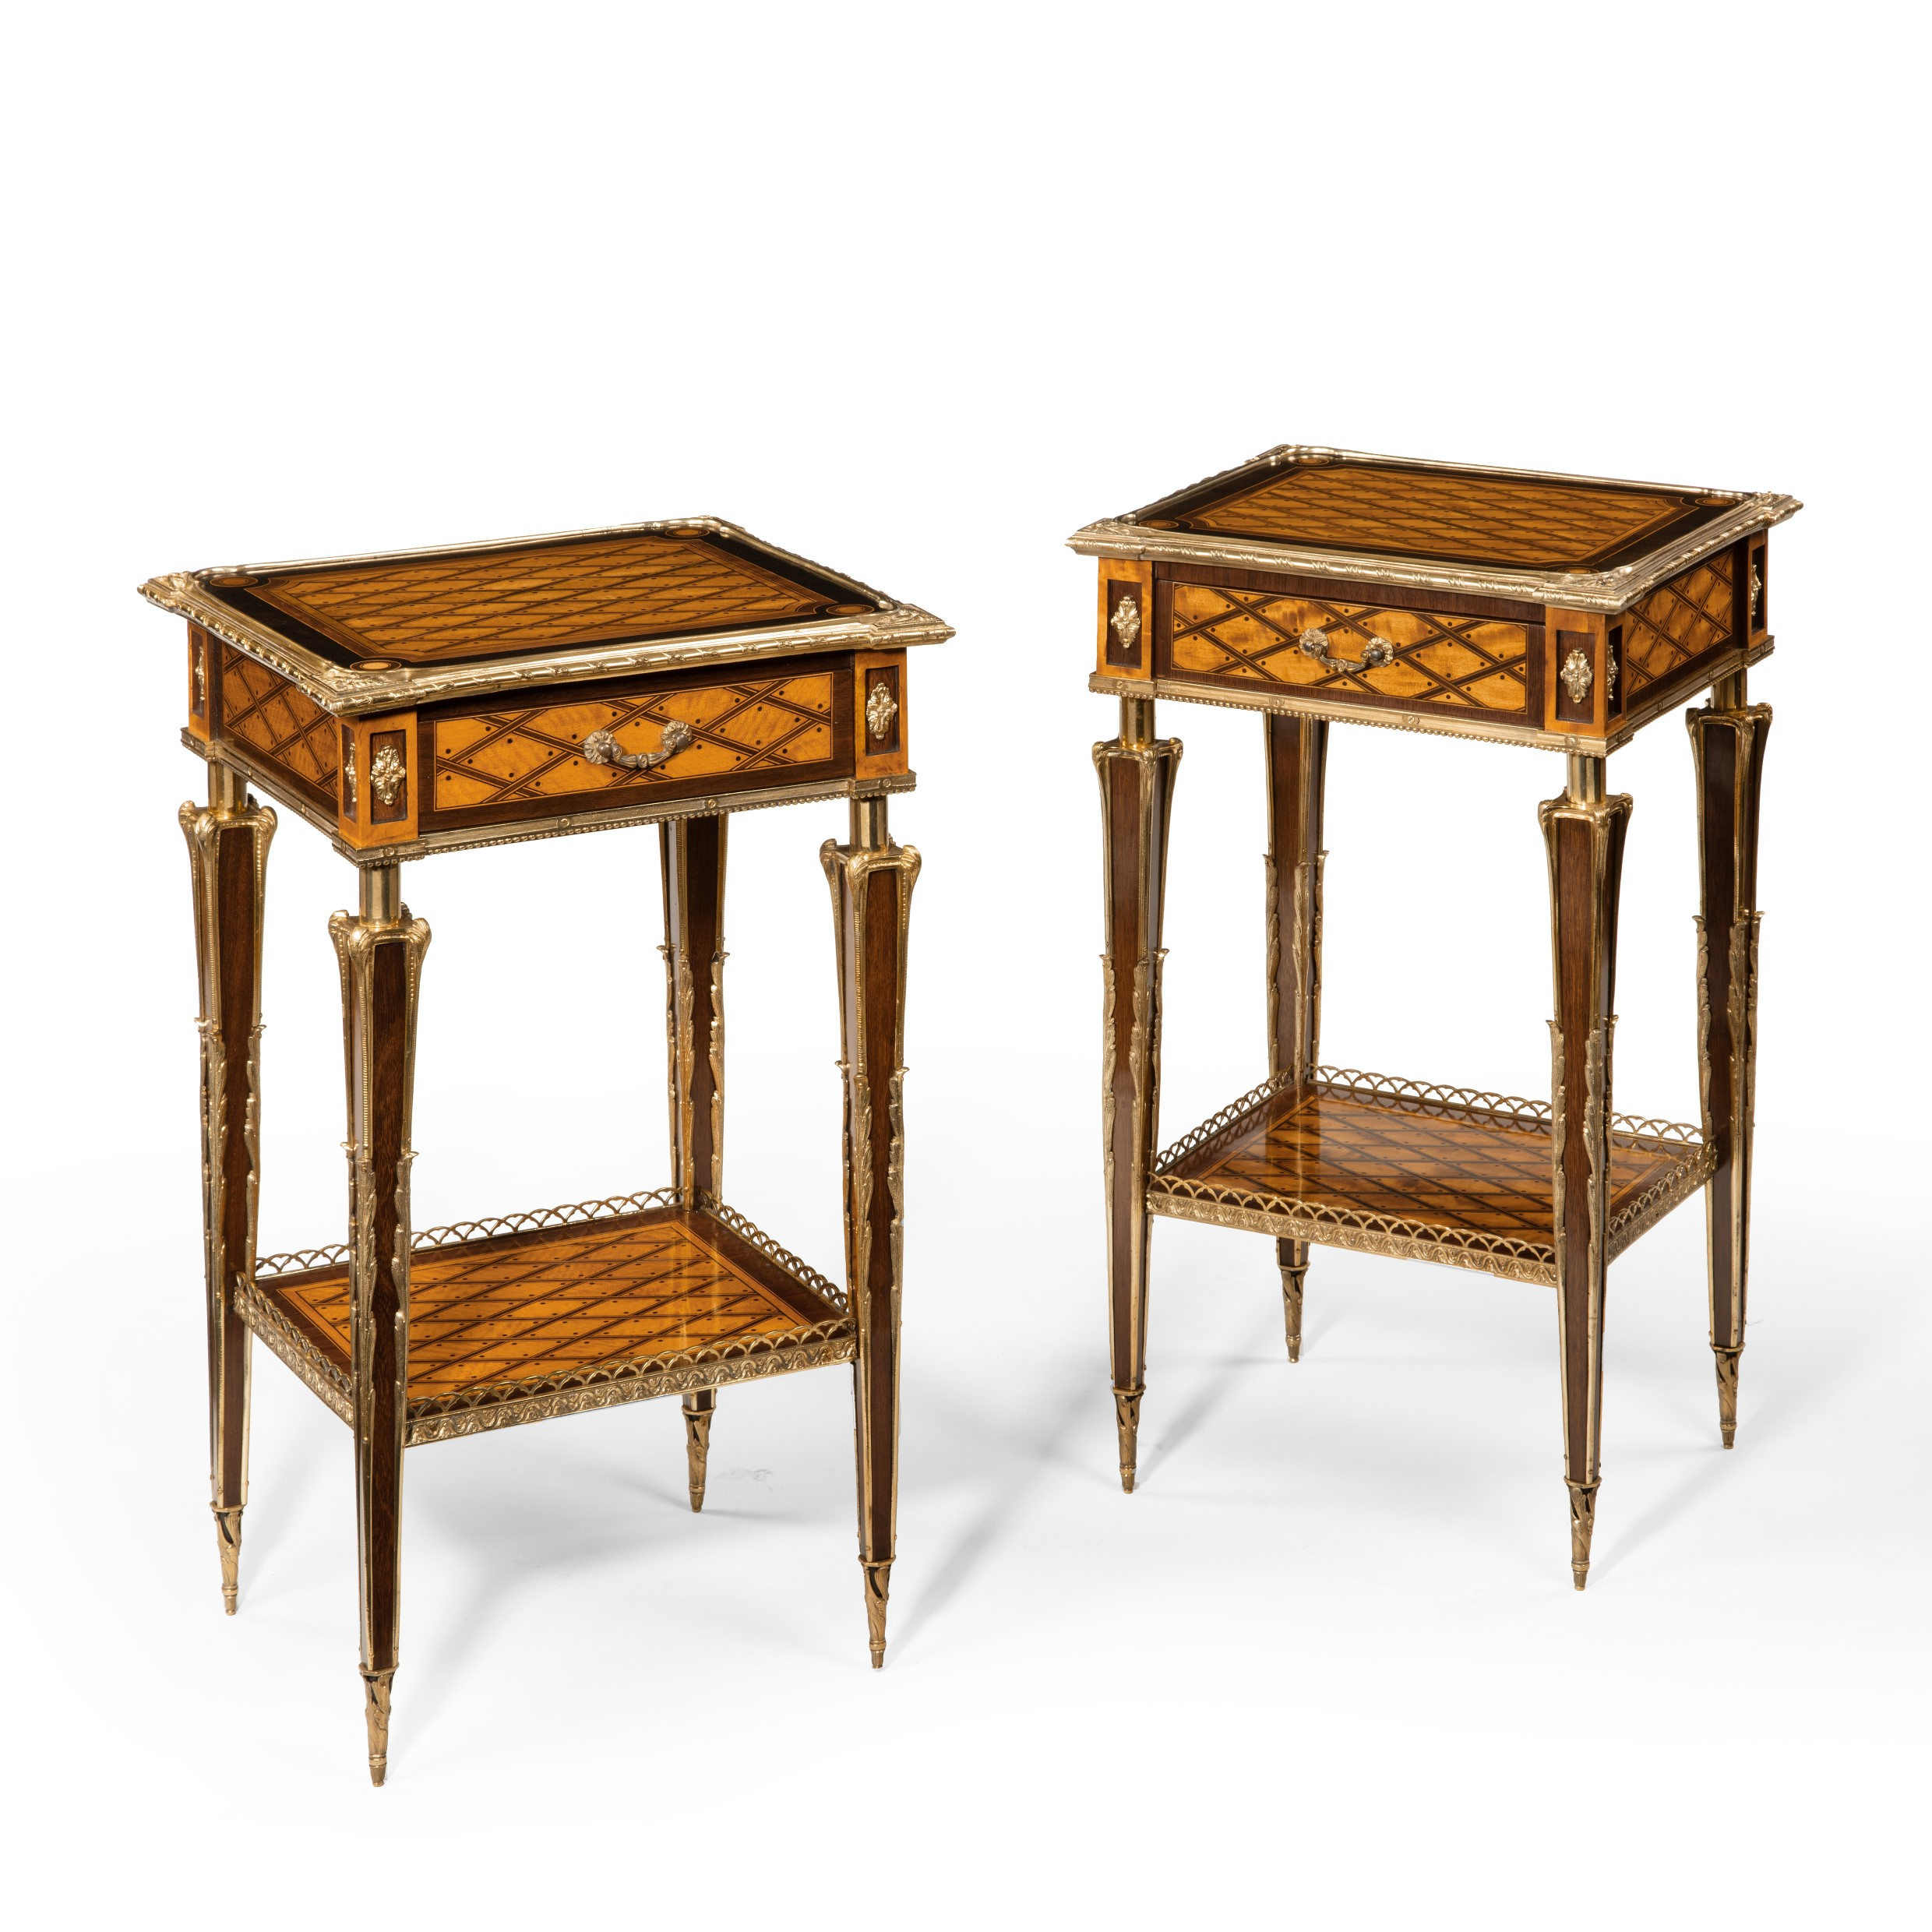 A matched pair of satinwood tables after Donald Ross, retailed by Edwards and Roberts